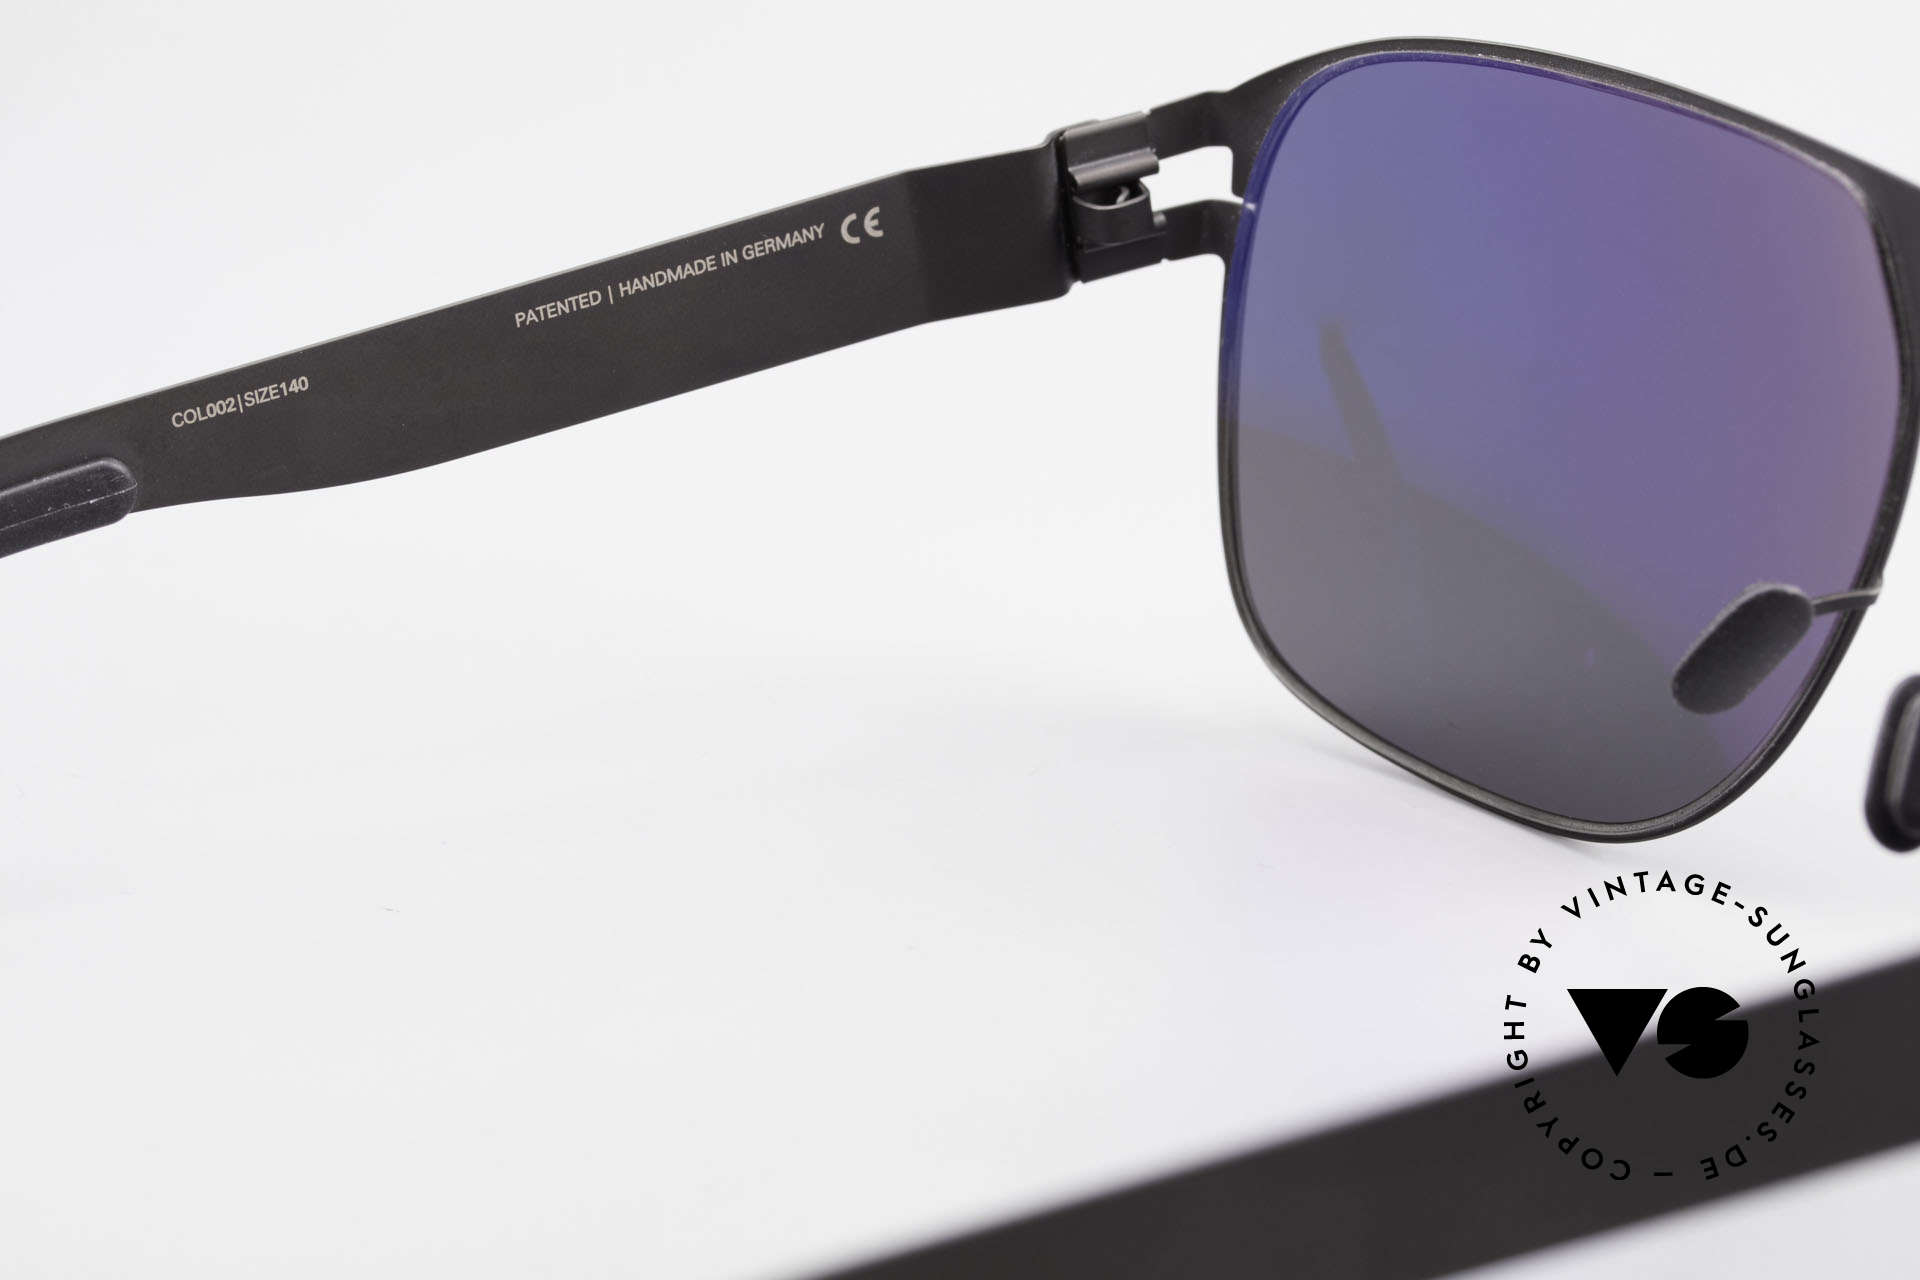 Mykita Tim No 1 Collection Shades 2011's, worn by many celebs (rare & in high demand, meanwhile), Made for Men